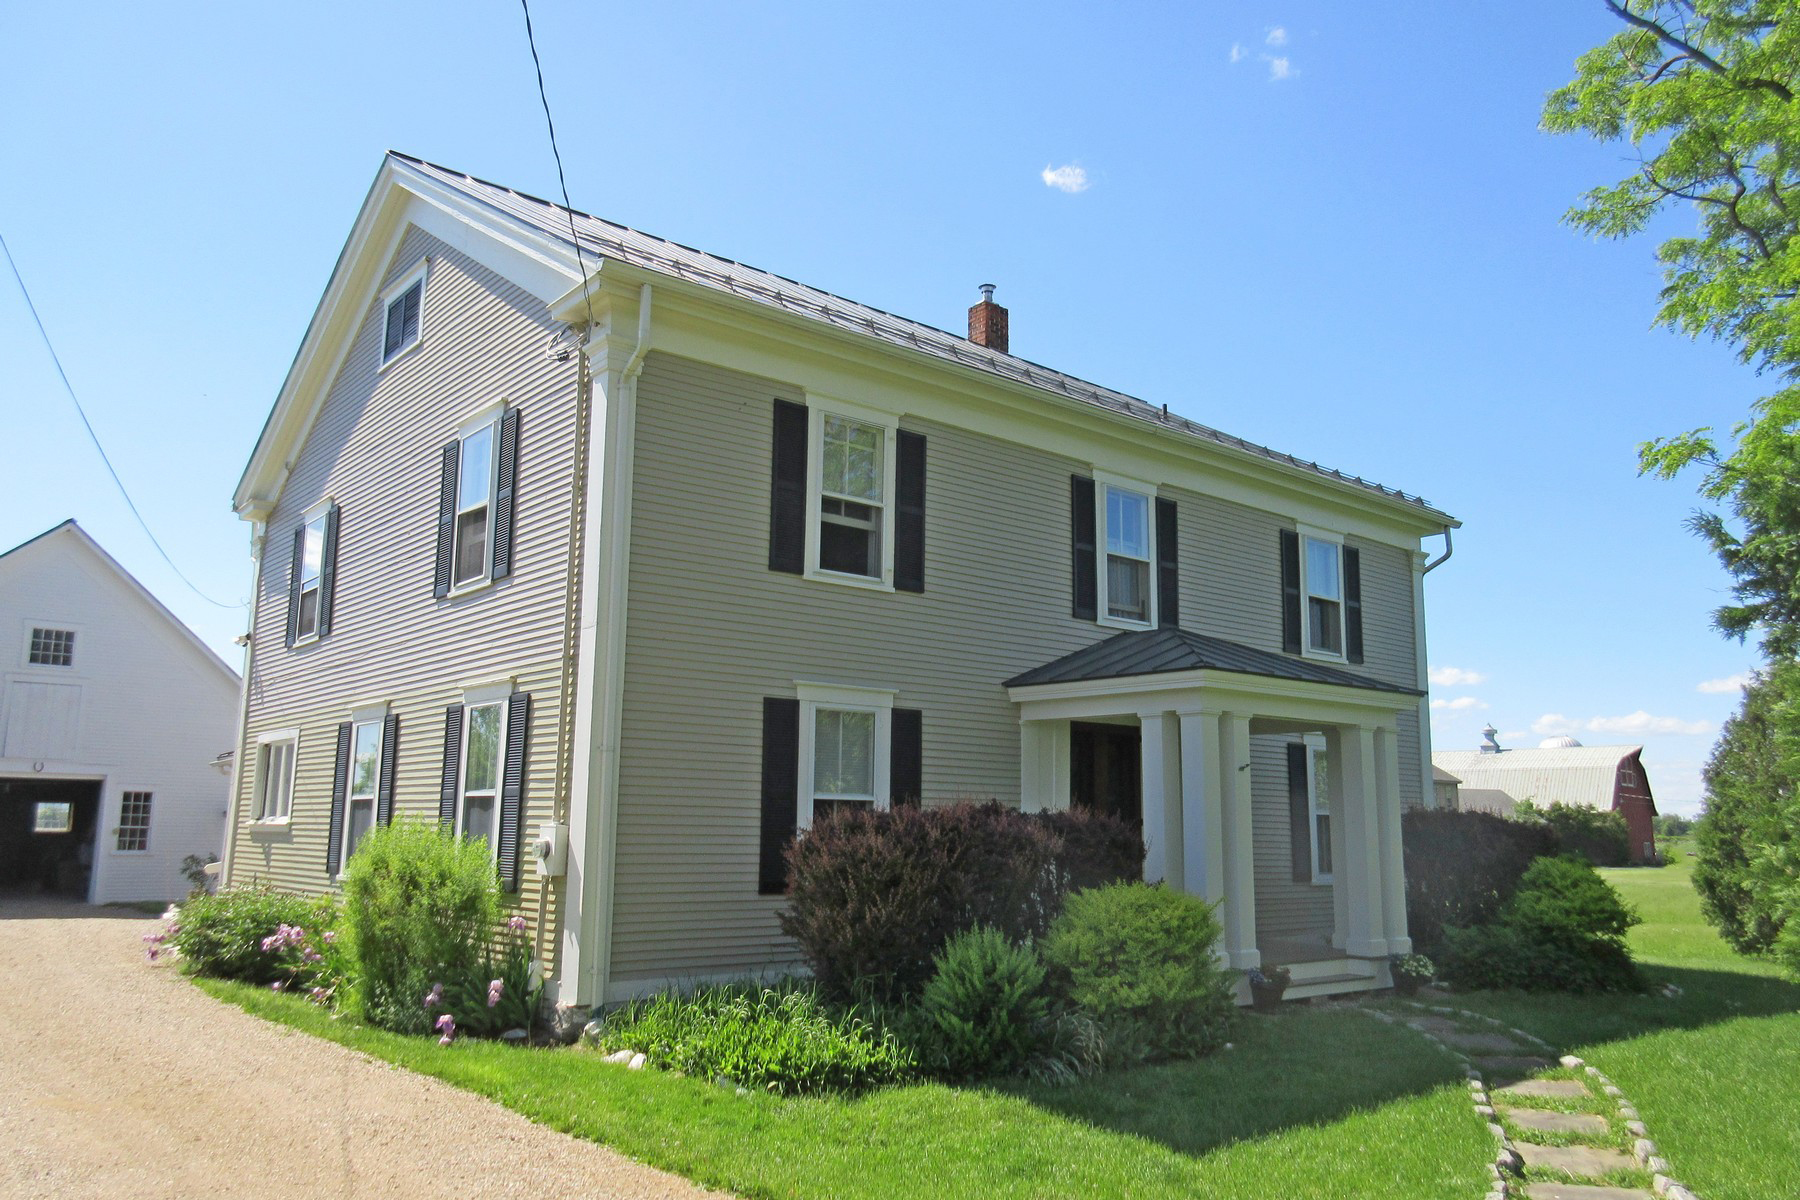 Single Family Home for Sale at 181 North Street, New Haven 181 North St New Haven, Vermont 05472 United States